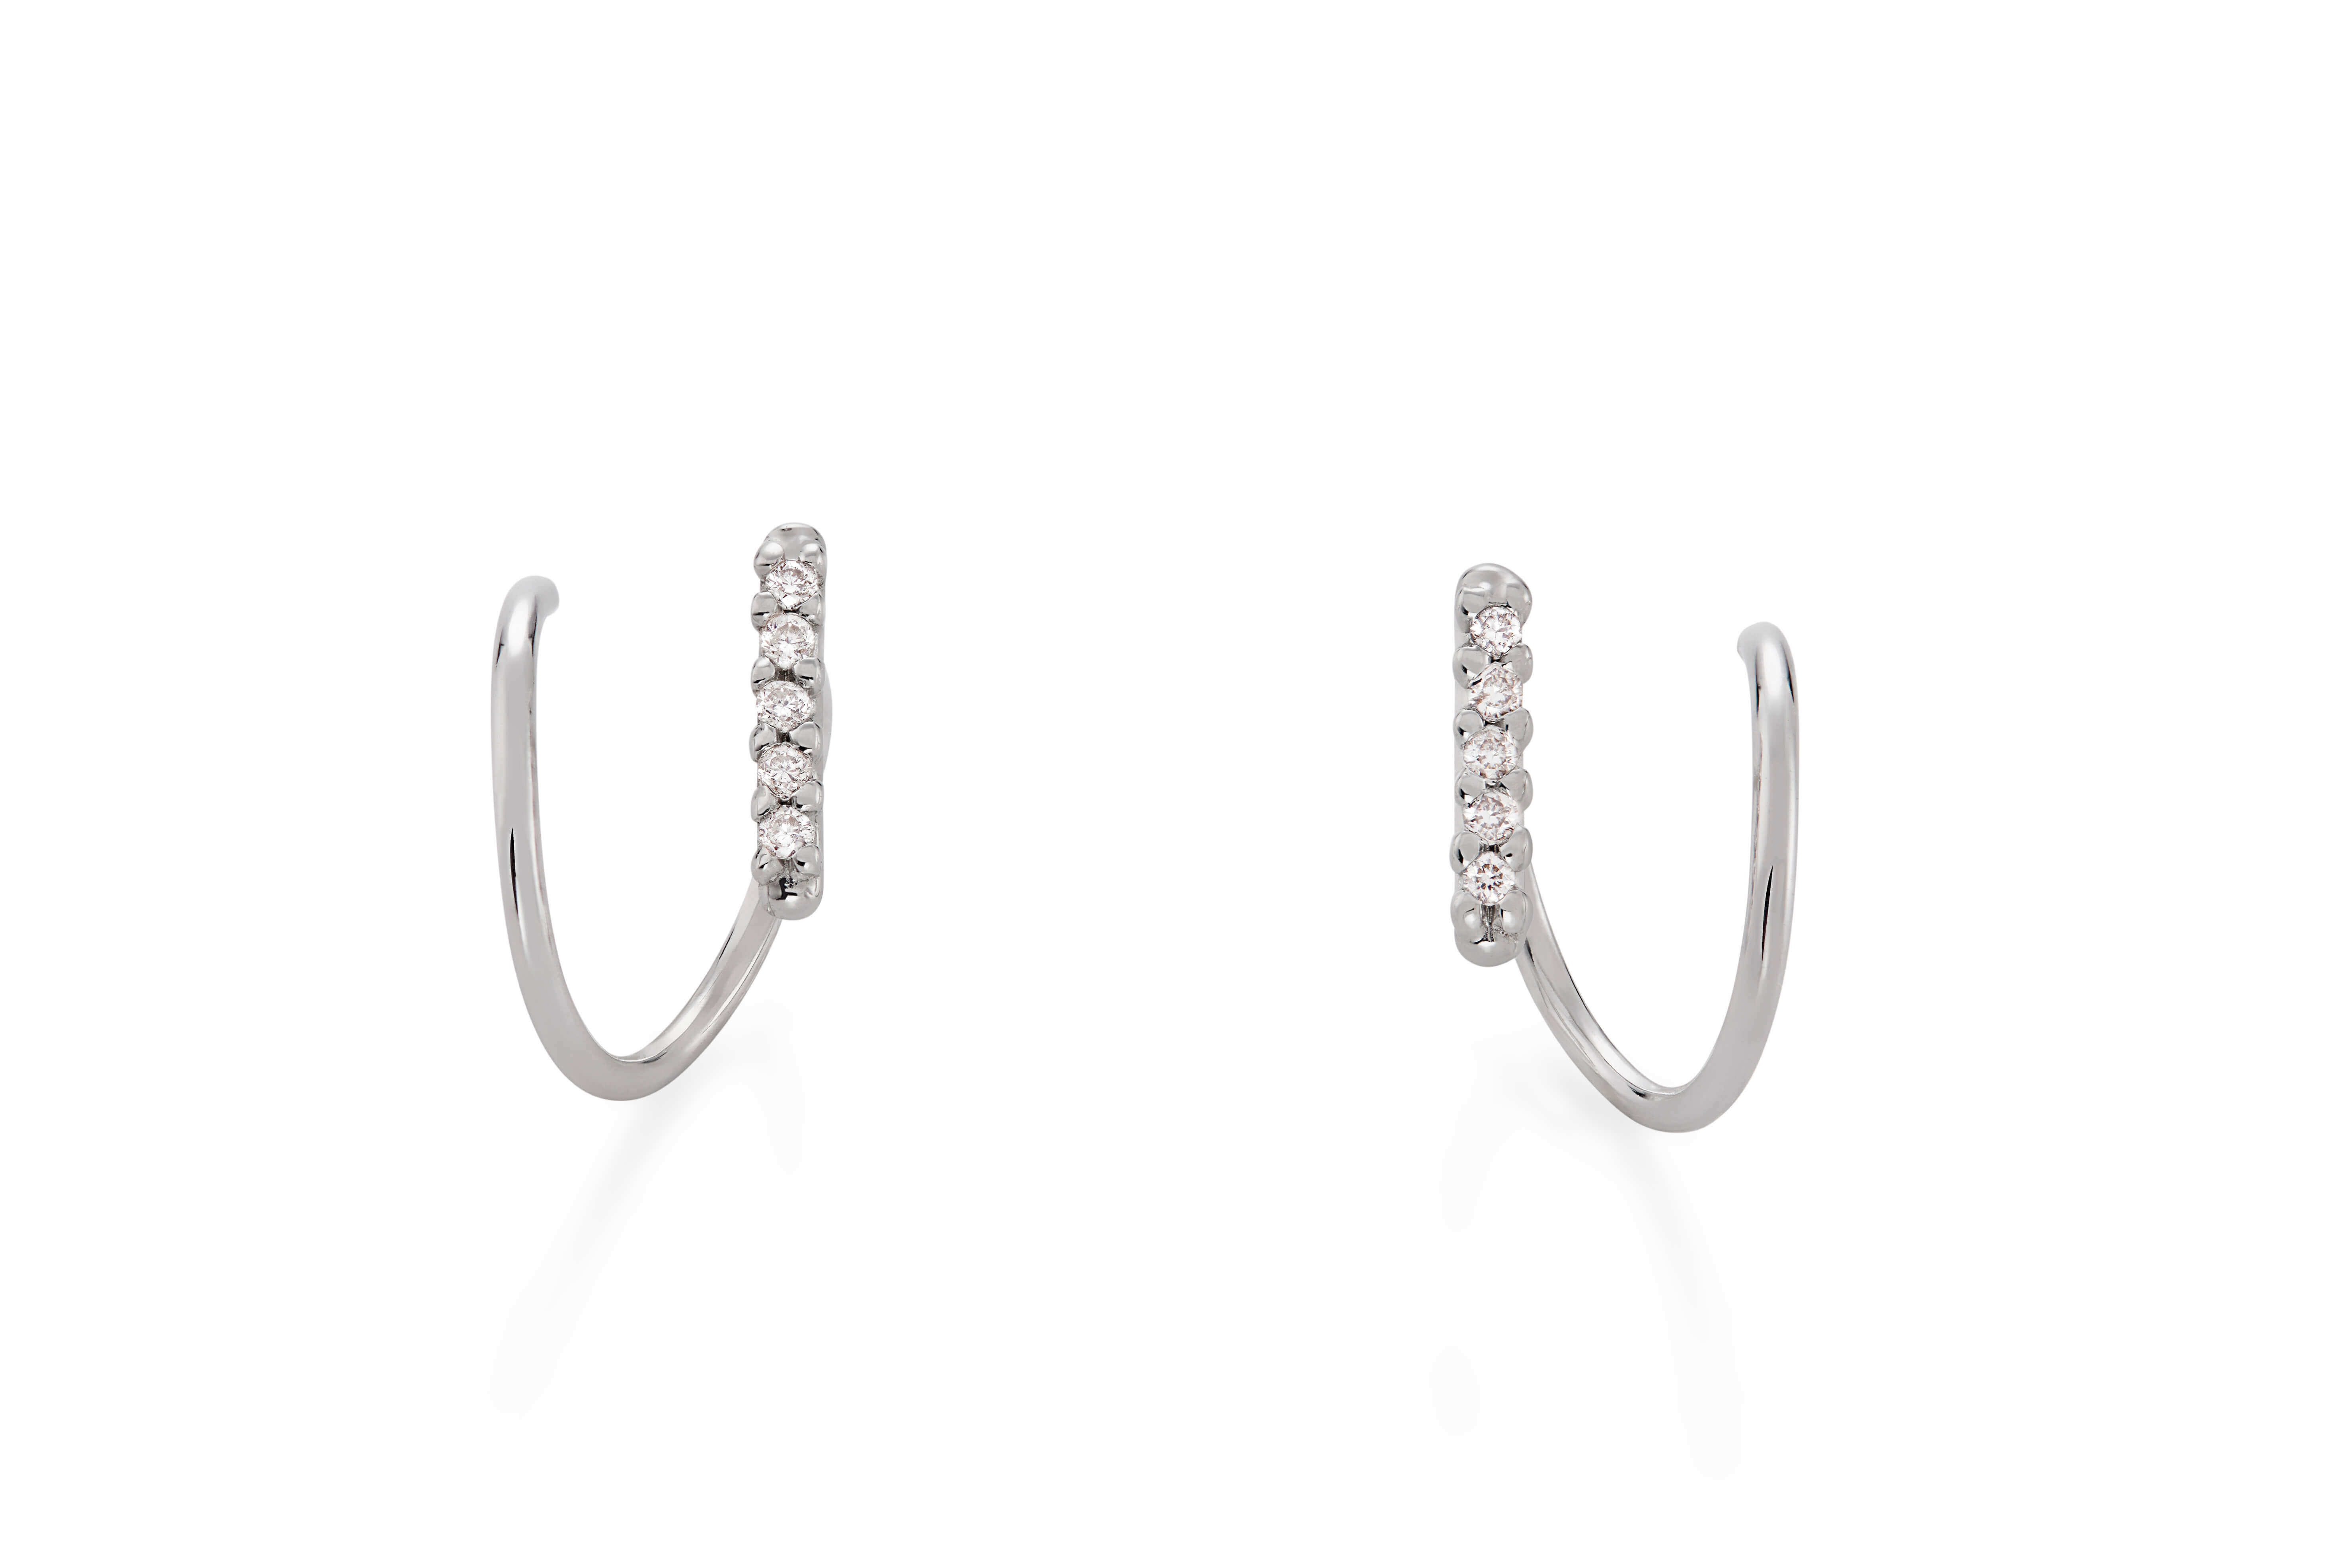 MyCollection_H.Stern_-_earrings_in_18K_white_gold_with_diamonds_accents_(B3B_209476)